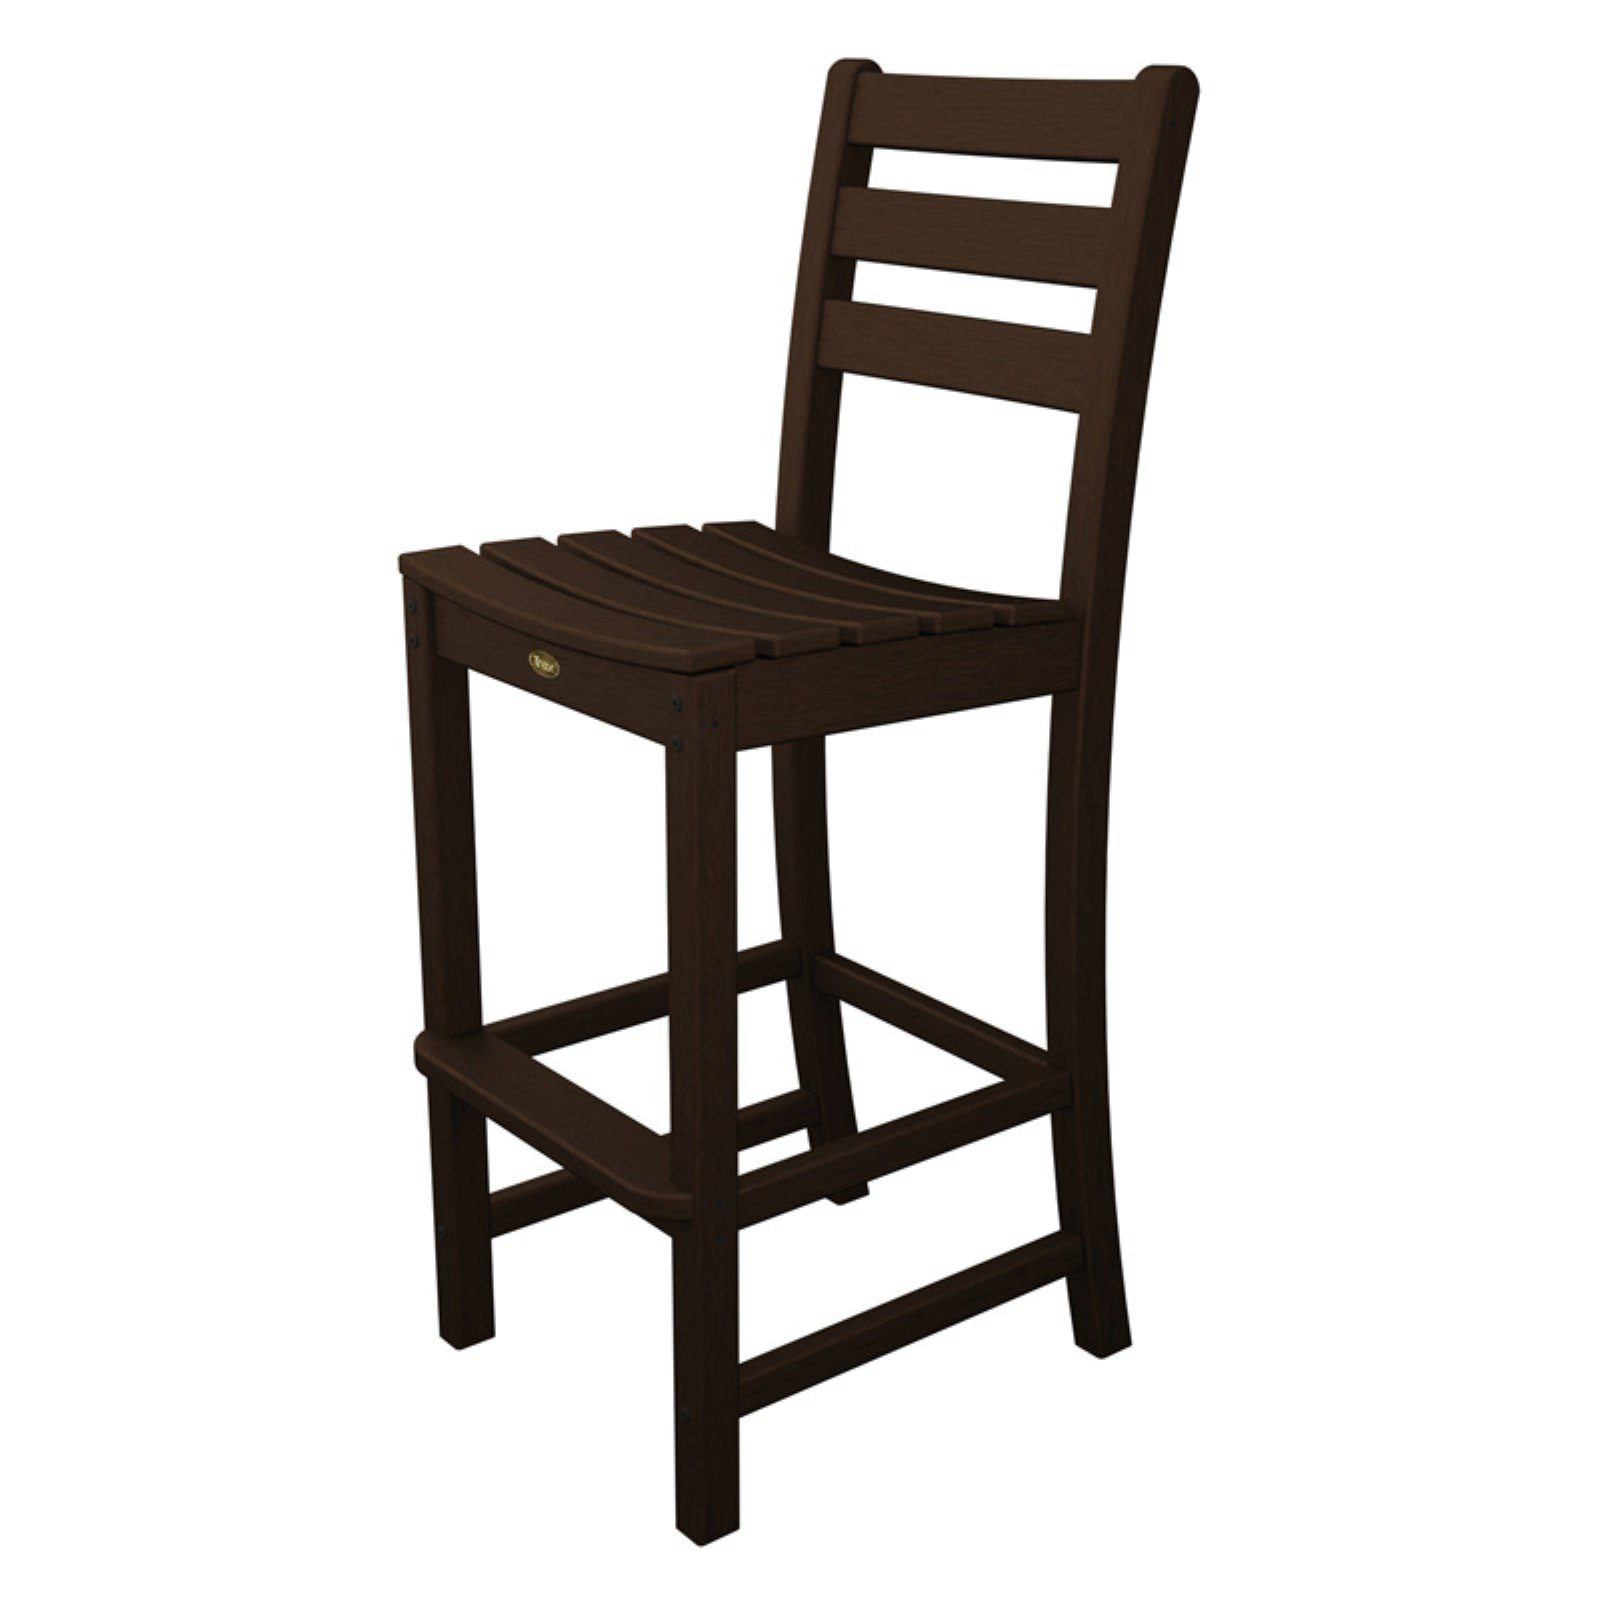 Trex Outdoor Furniture Recycled Plastic Monterey Bay Bar Height Side Chair